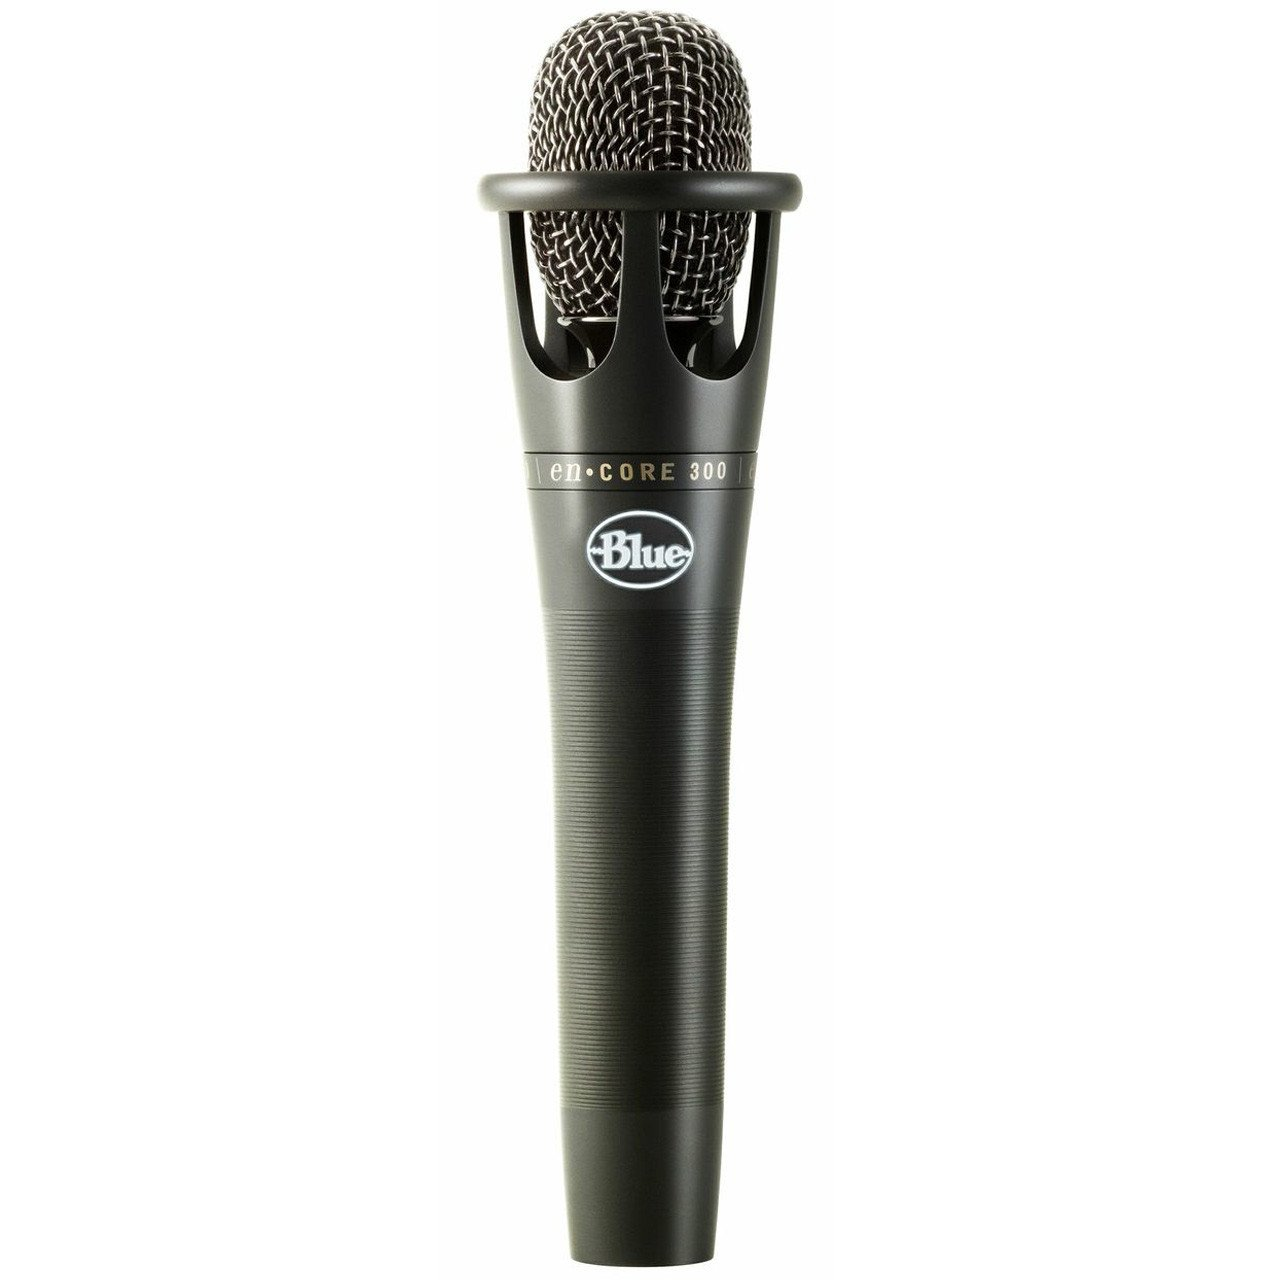 Condenser Microphones - Blue Microphones EnCORE 300 - Condenser Performance Microphone